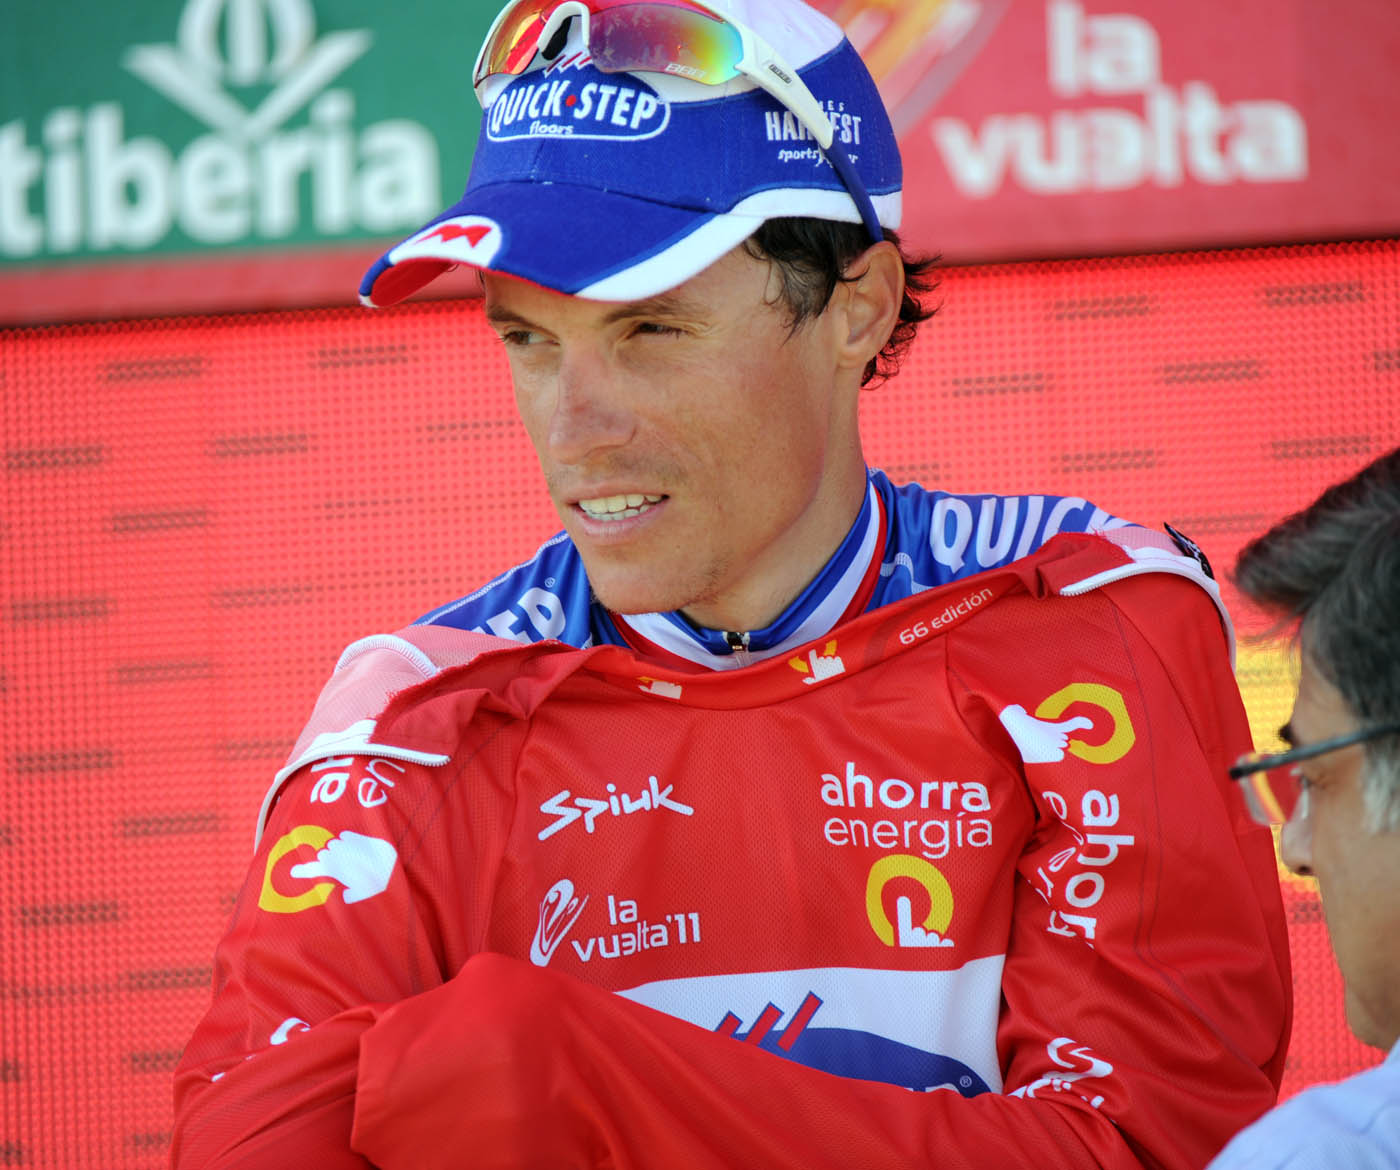 Sylvain Chavanel on the podium, Vuelta a Espana 2011, stage six